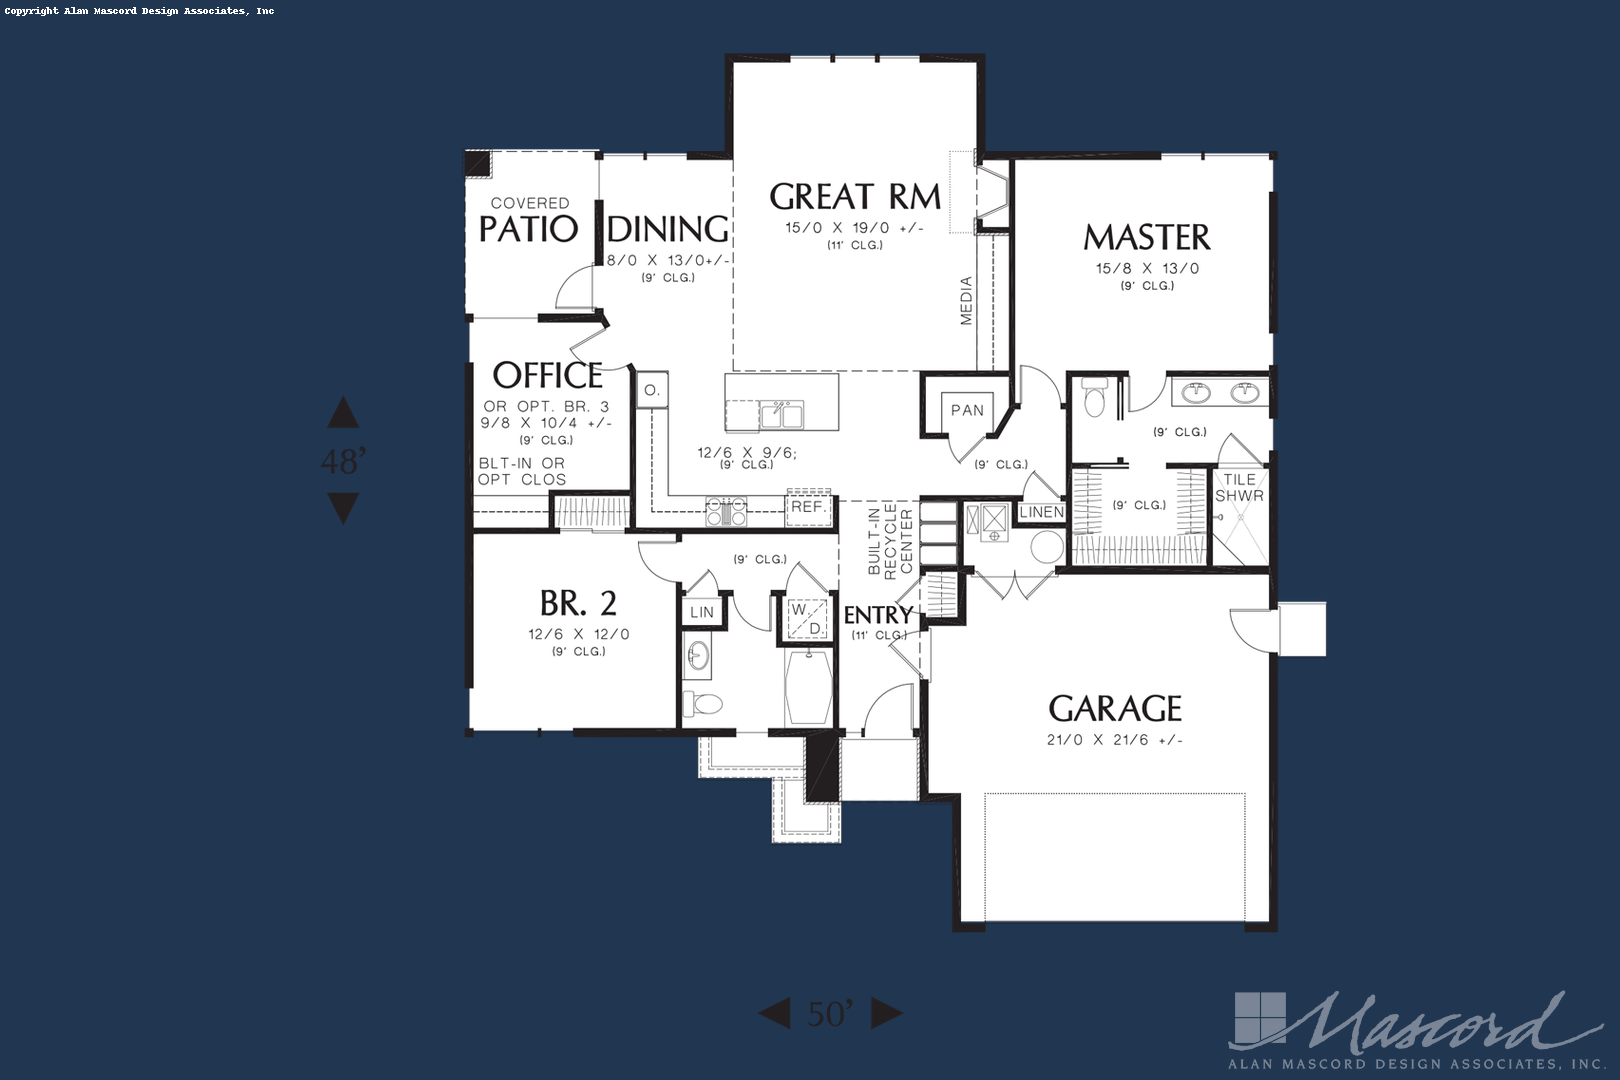 Ranch House Plan 1169ES The Modern Ranch: 1608 Sqft, 3 Beds ... on southern home kitchen plans, ranch house kitchen designs, ranch house elevation drawings, lake house kitchen plans,